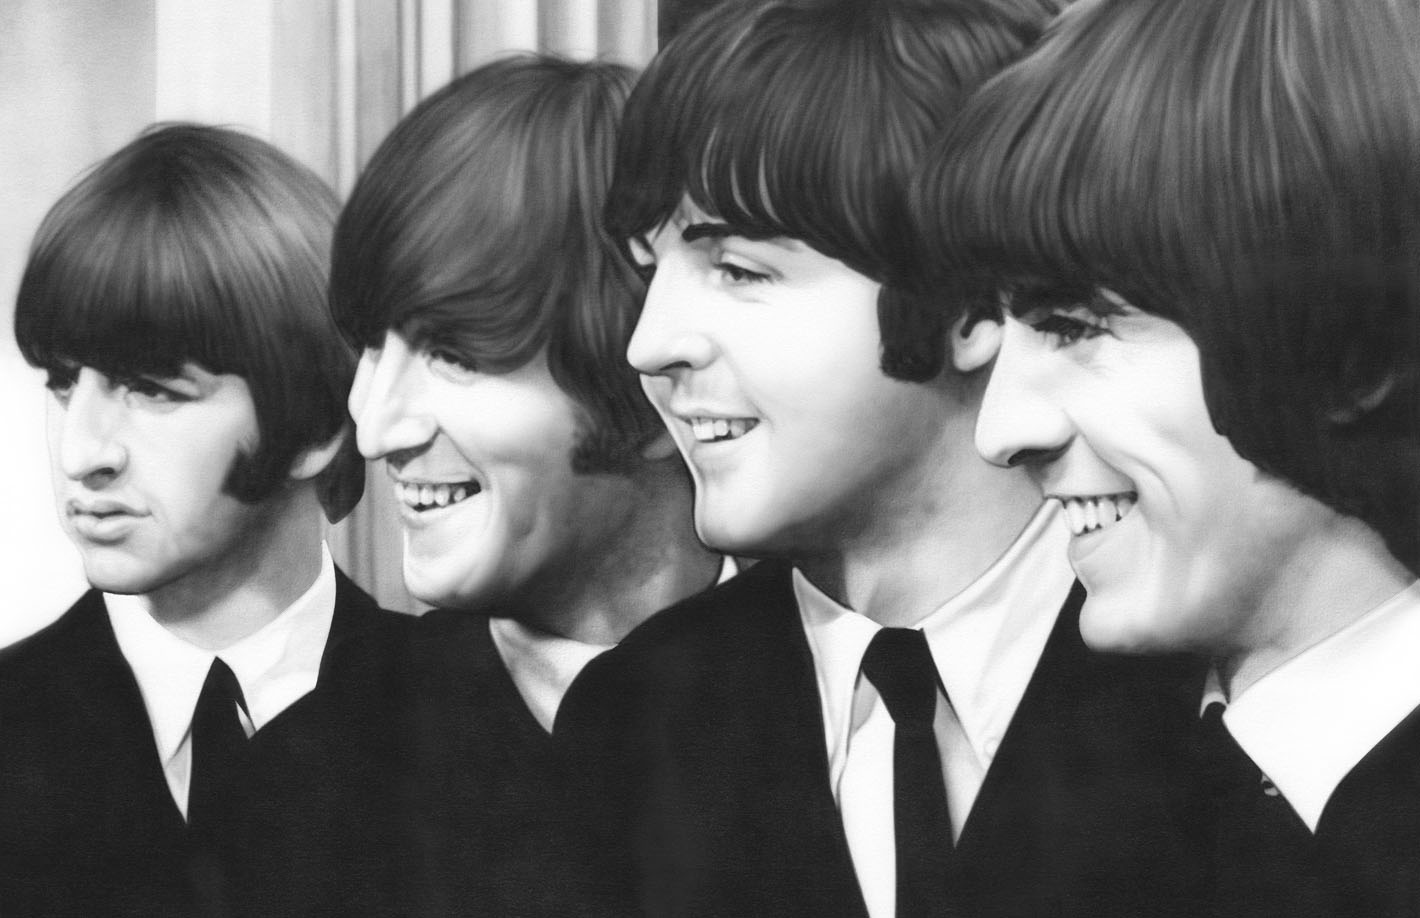 Ryan's Blog: The Beatles Pictures